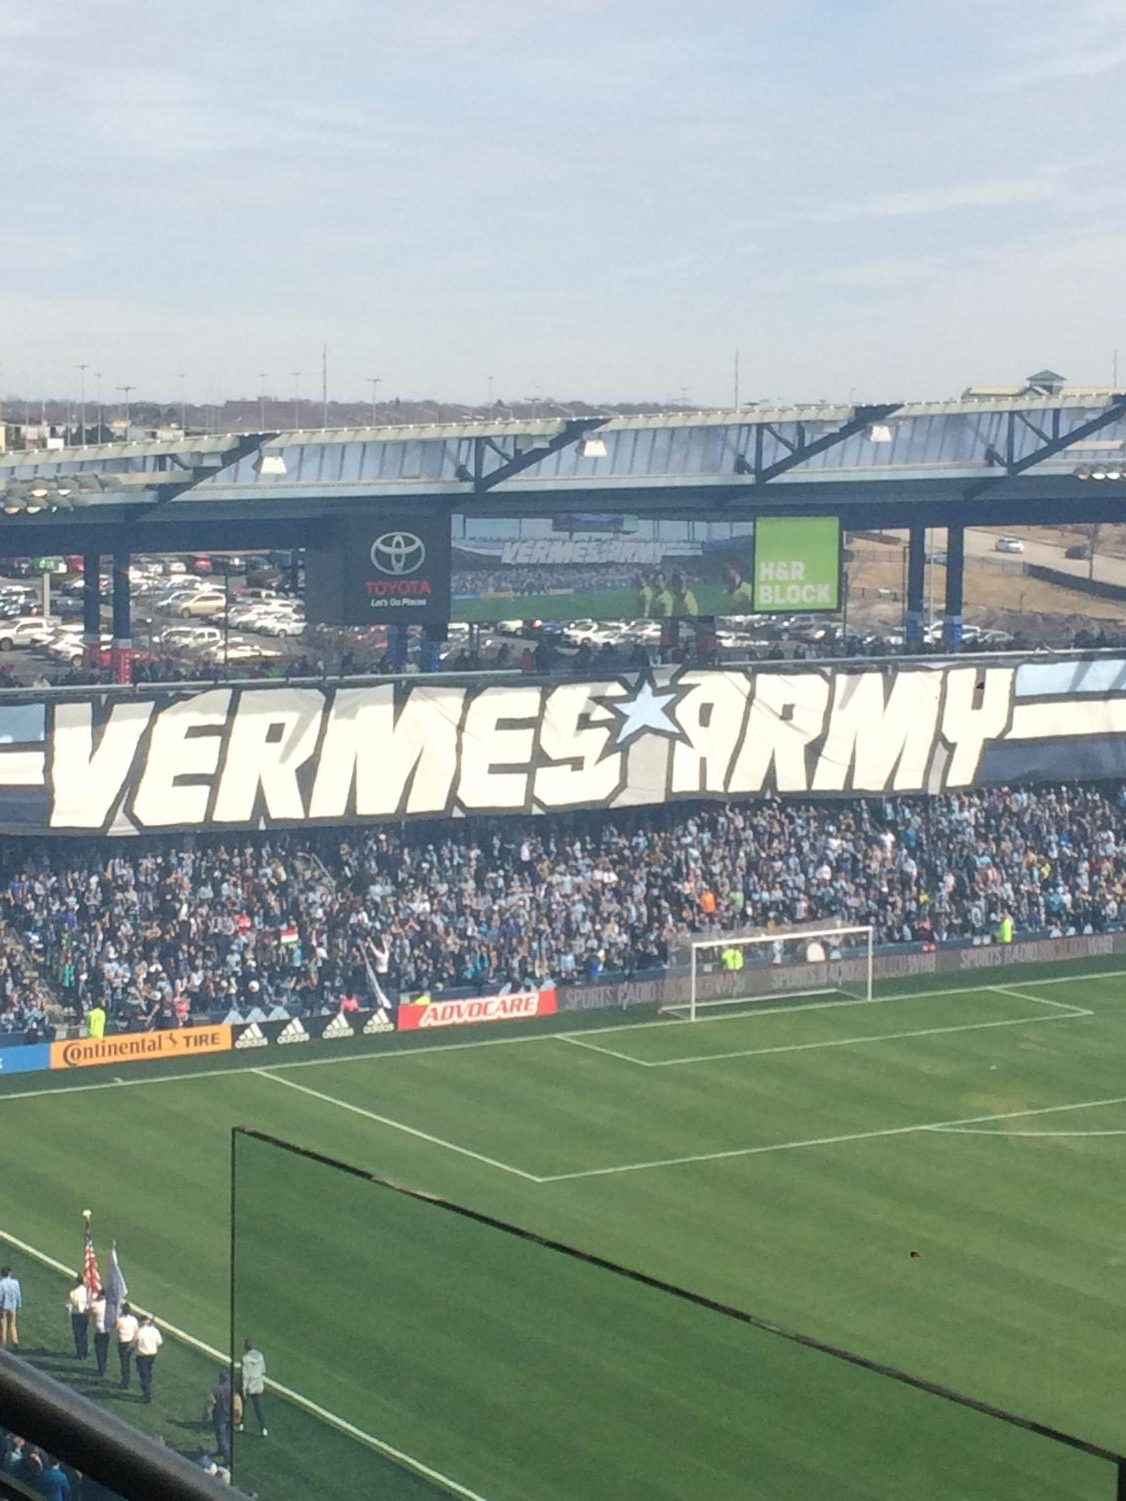 The Cauldron putting on a fine display in Sporting KC MLS home opener